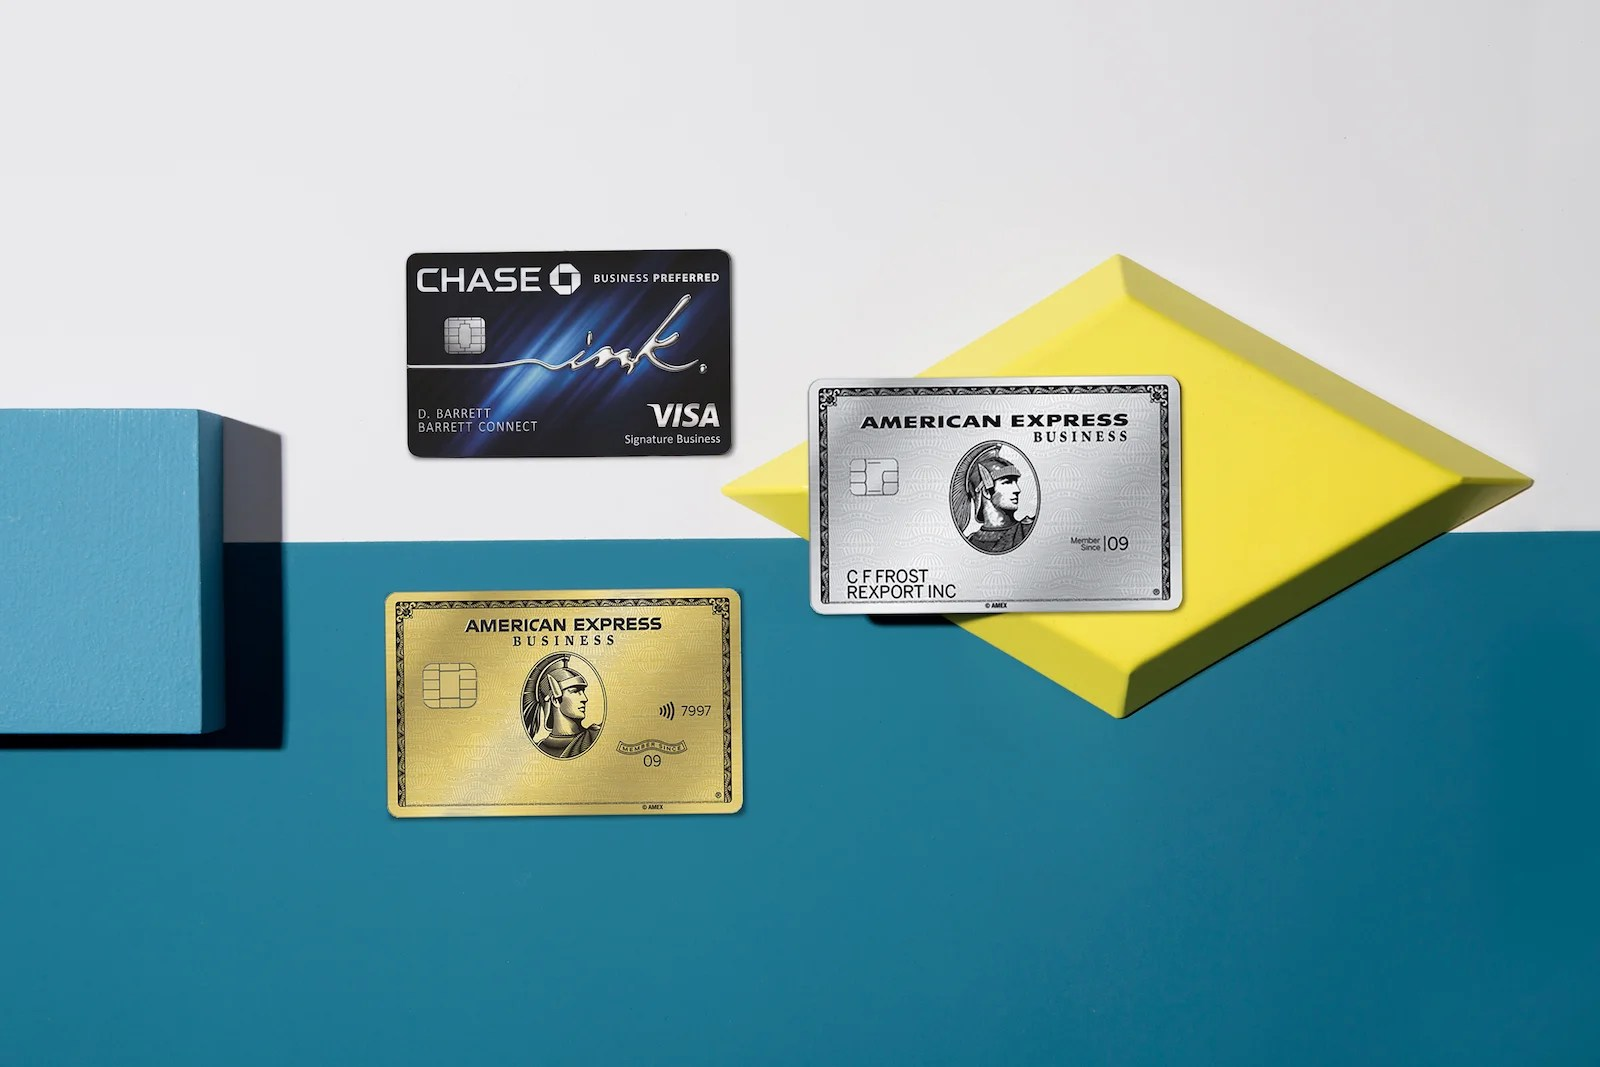 American Express Bank Near Me >> Best Small Business Credit Cards Of 2019 The Points Guy